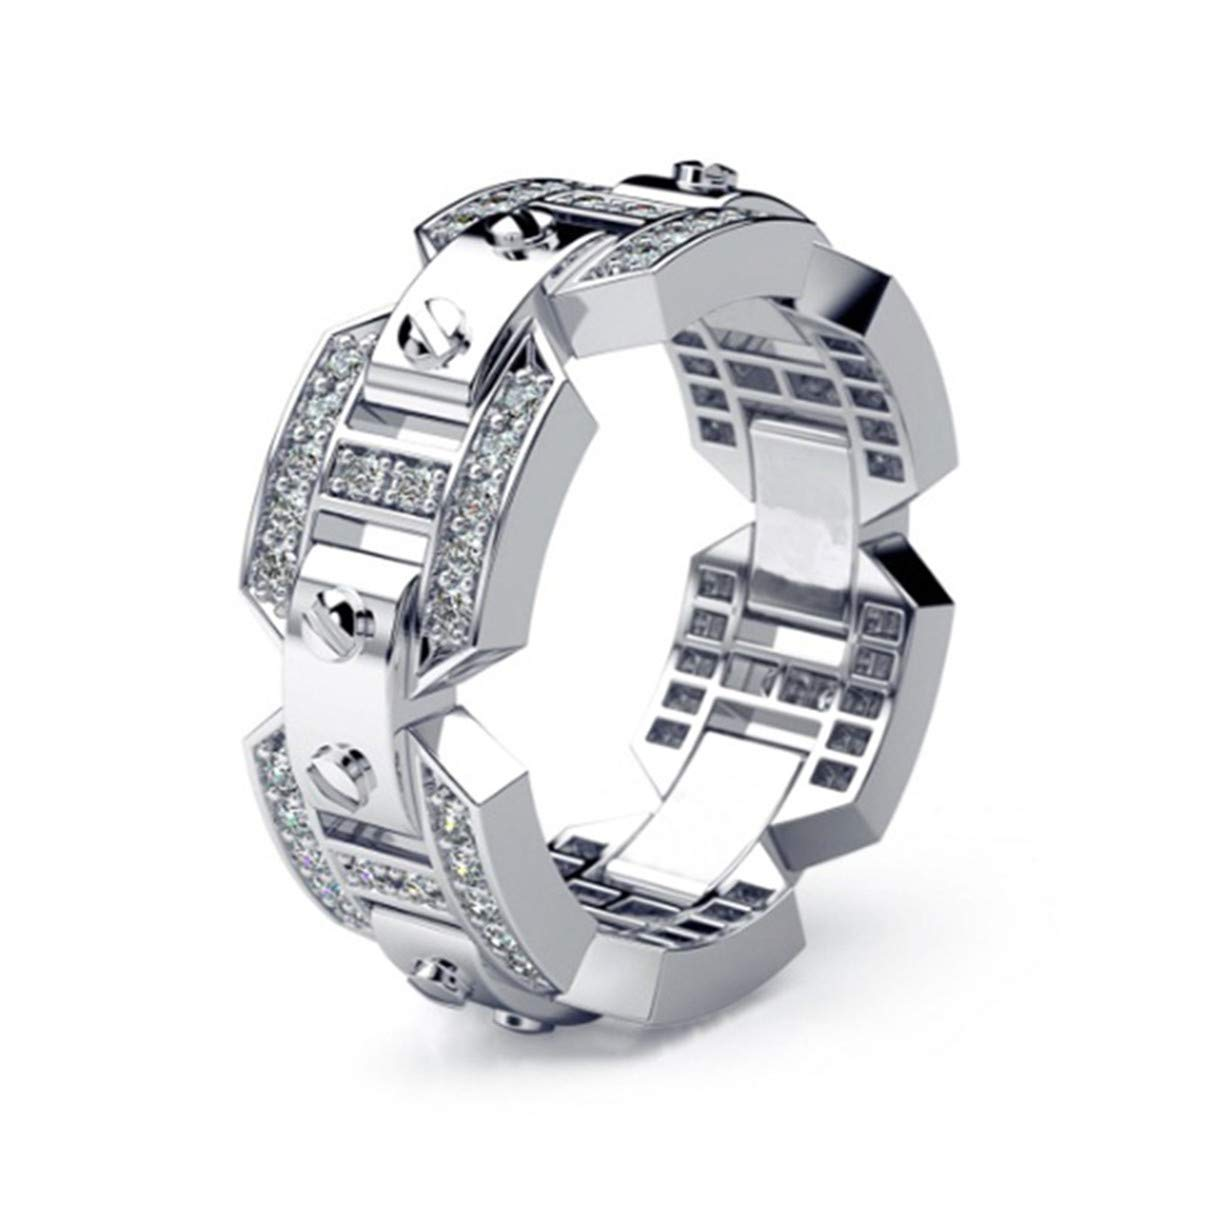 Plating and Diamond Ring Fashion Engagement Wedding Men's Jewelry Silver, Size 9 by Tianorr